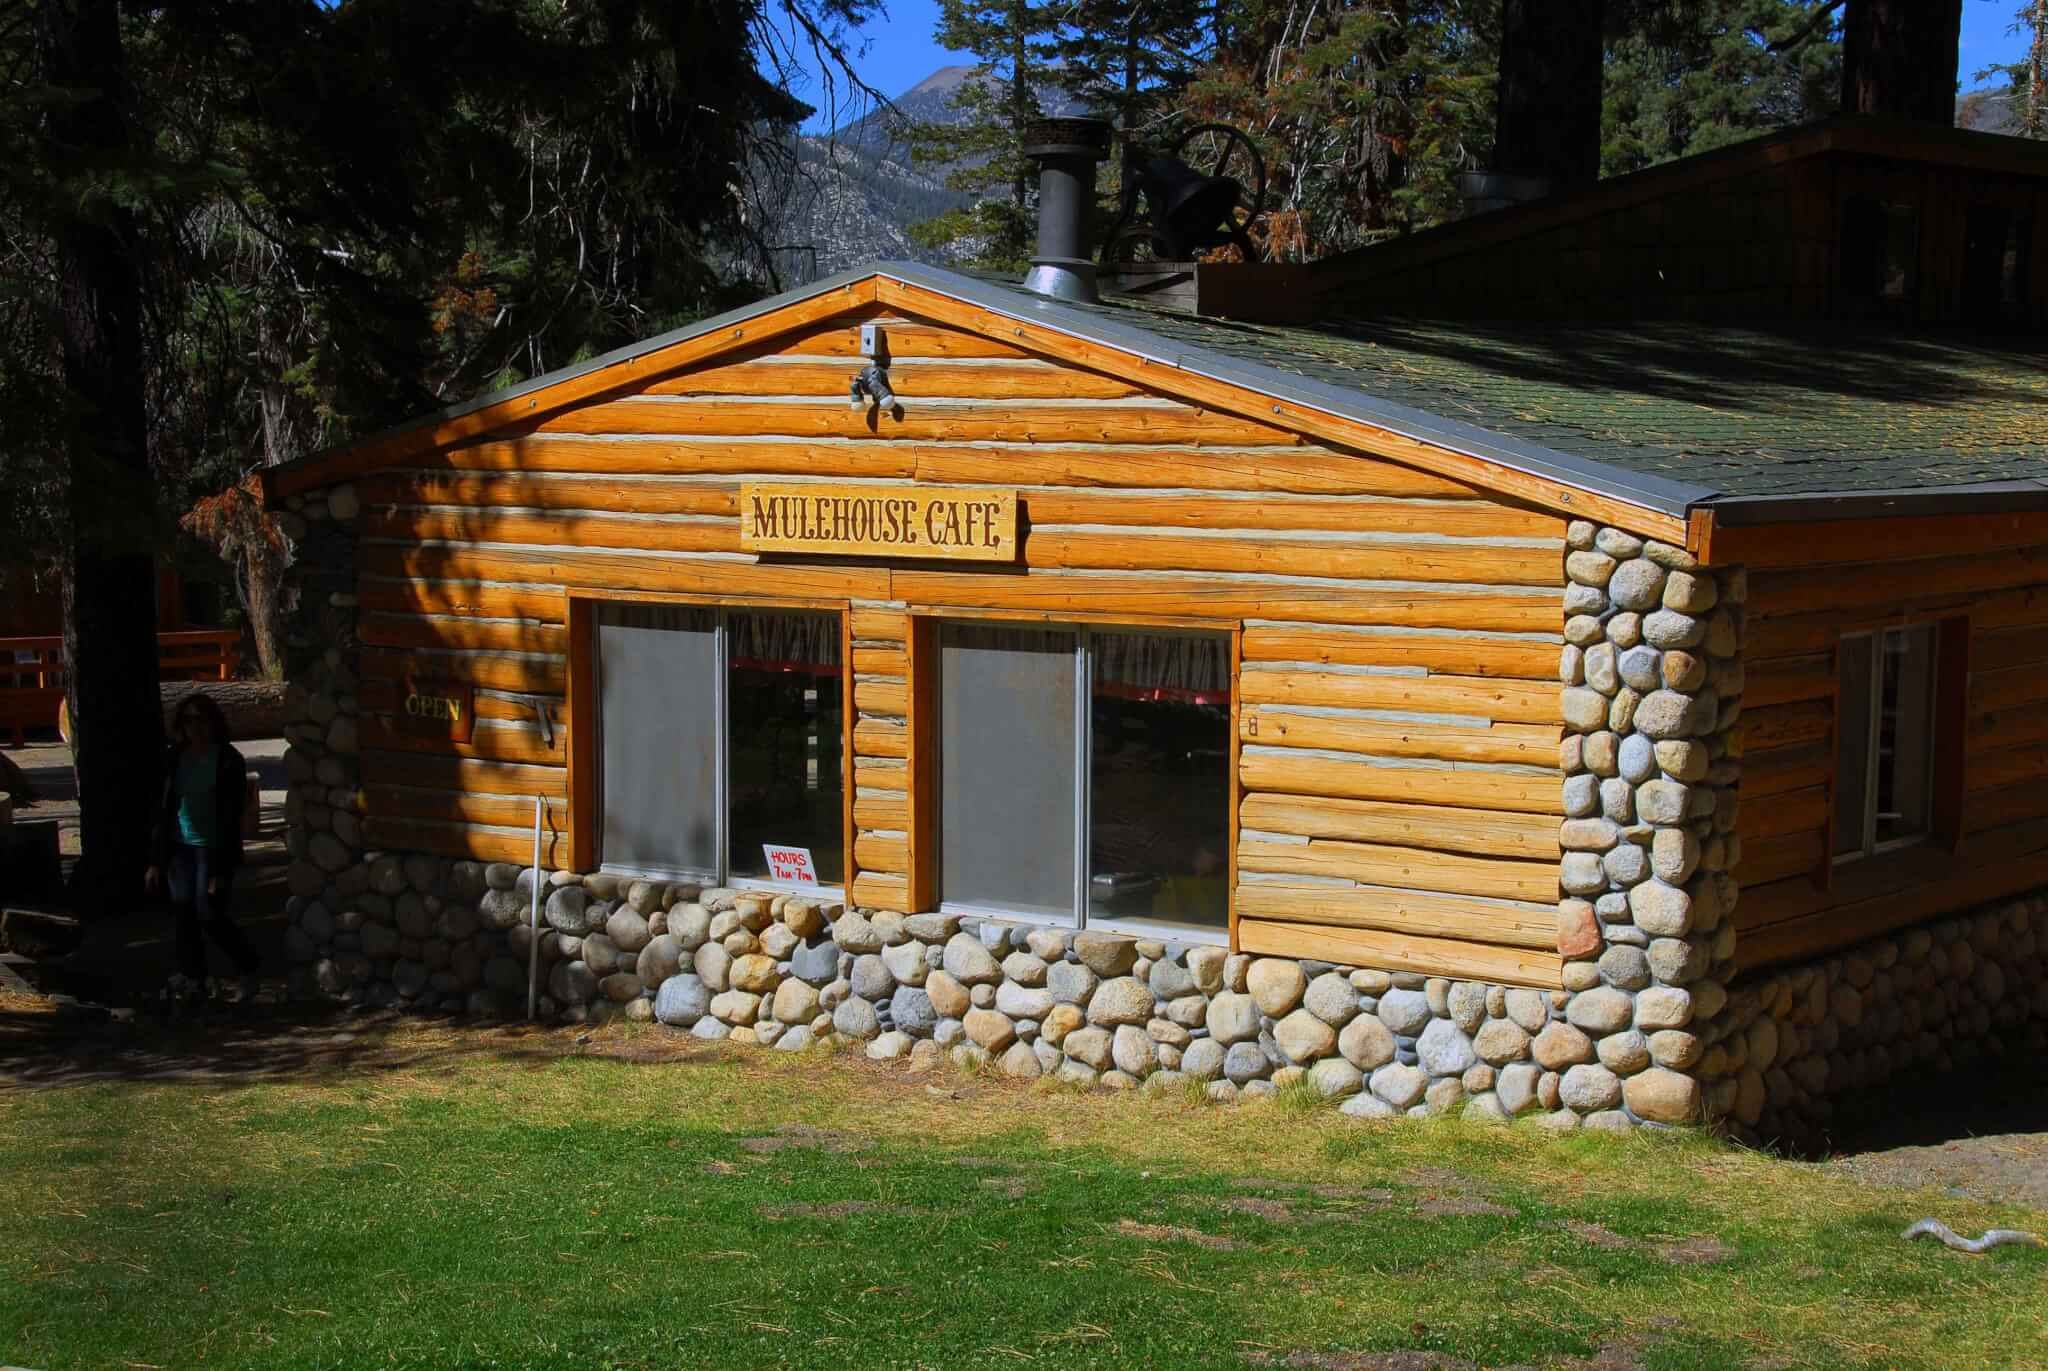 The Best Mammoth Lakes Area Campgrounds Reds Meadow Mulehouse Cafe